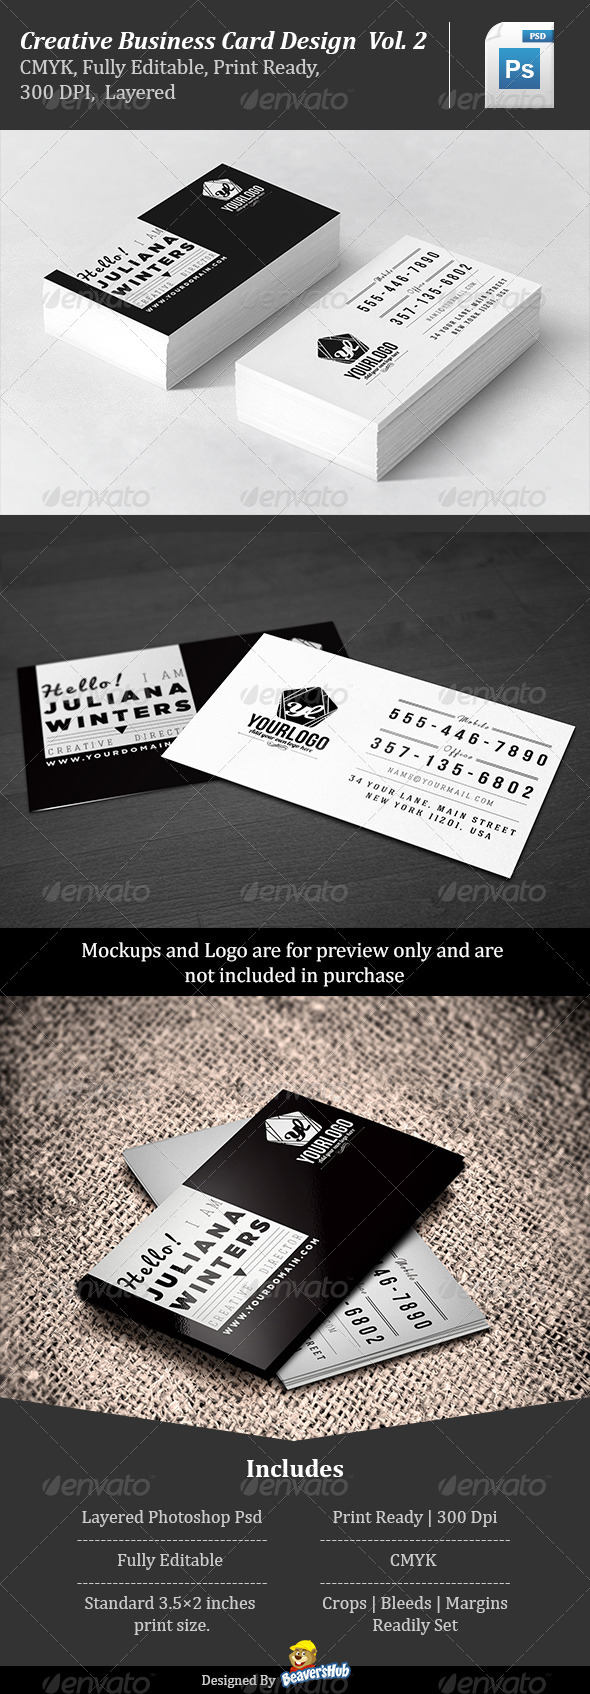 Creative Business Card Design Vol.2